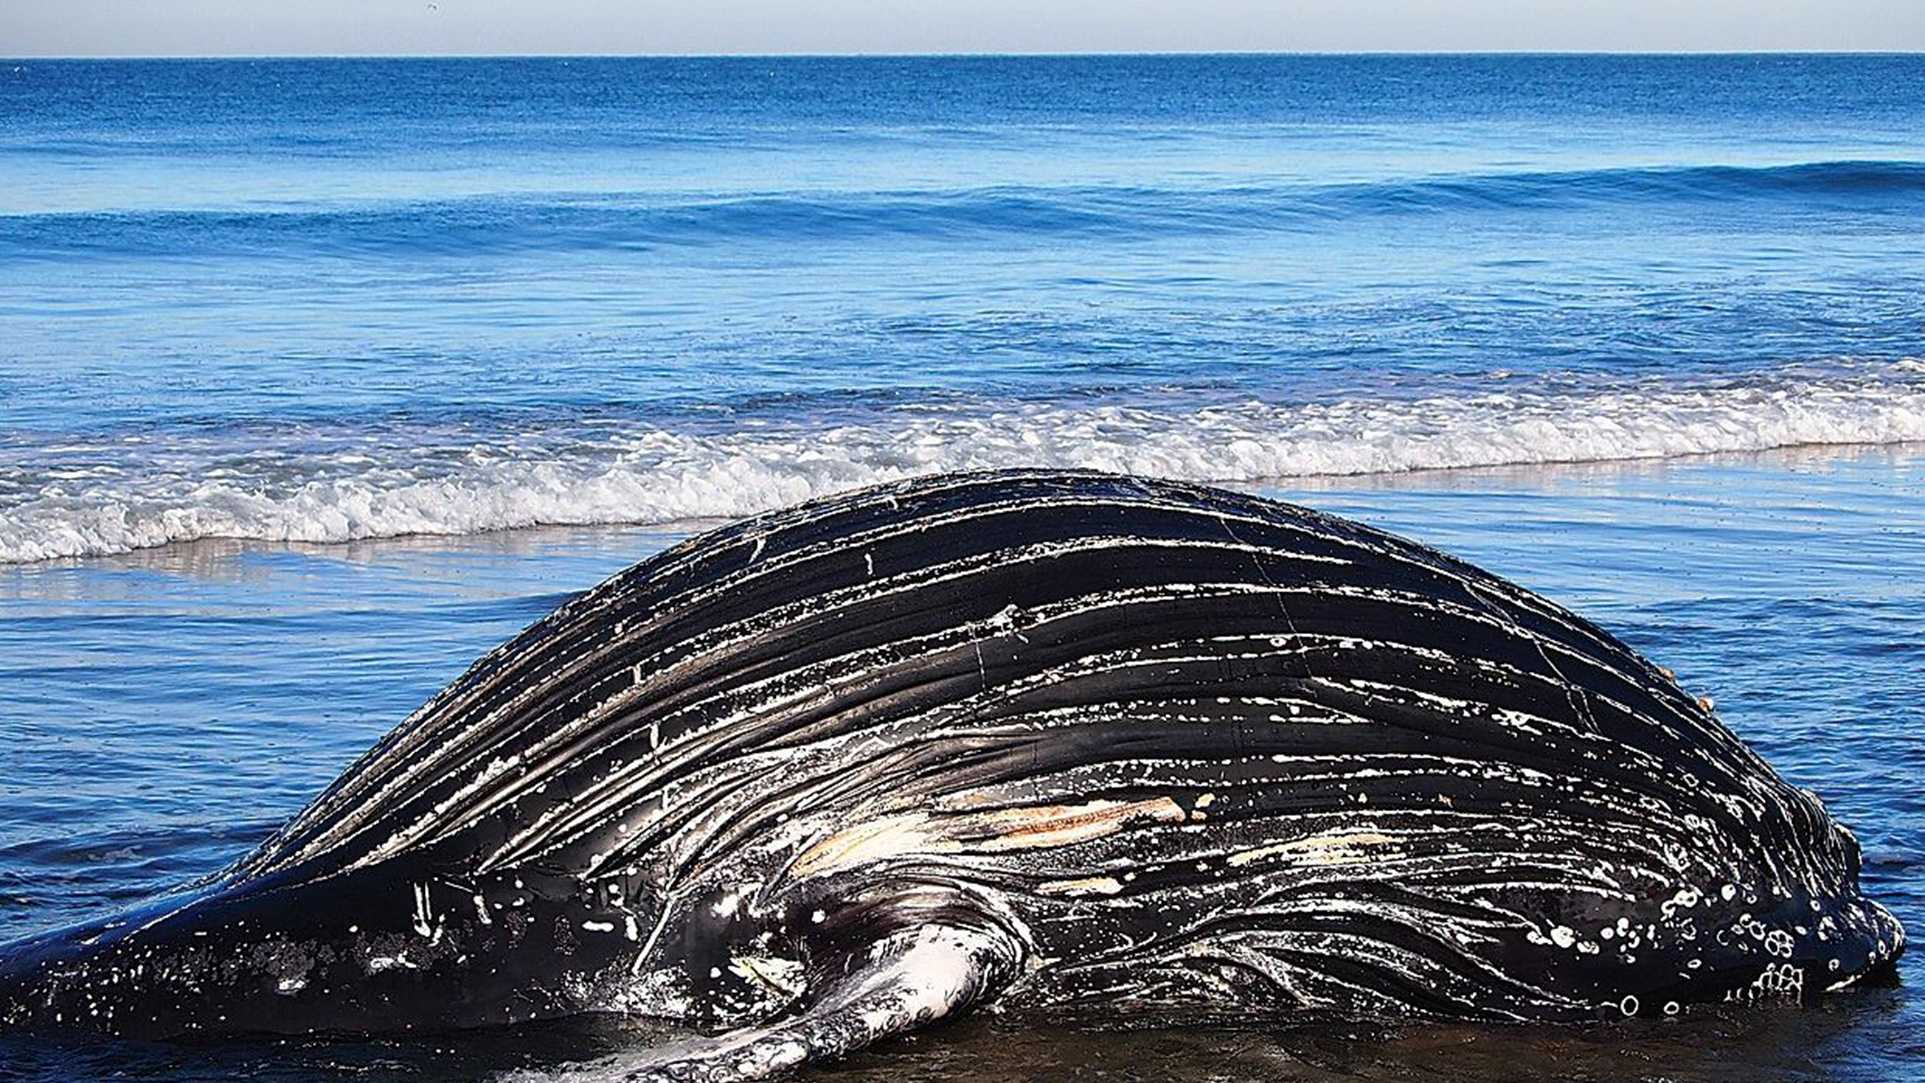 A humpback whale washed up at Sunset State Beach south of Aptos in March.